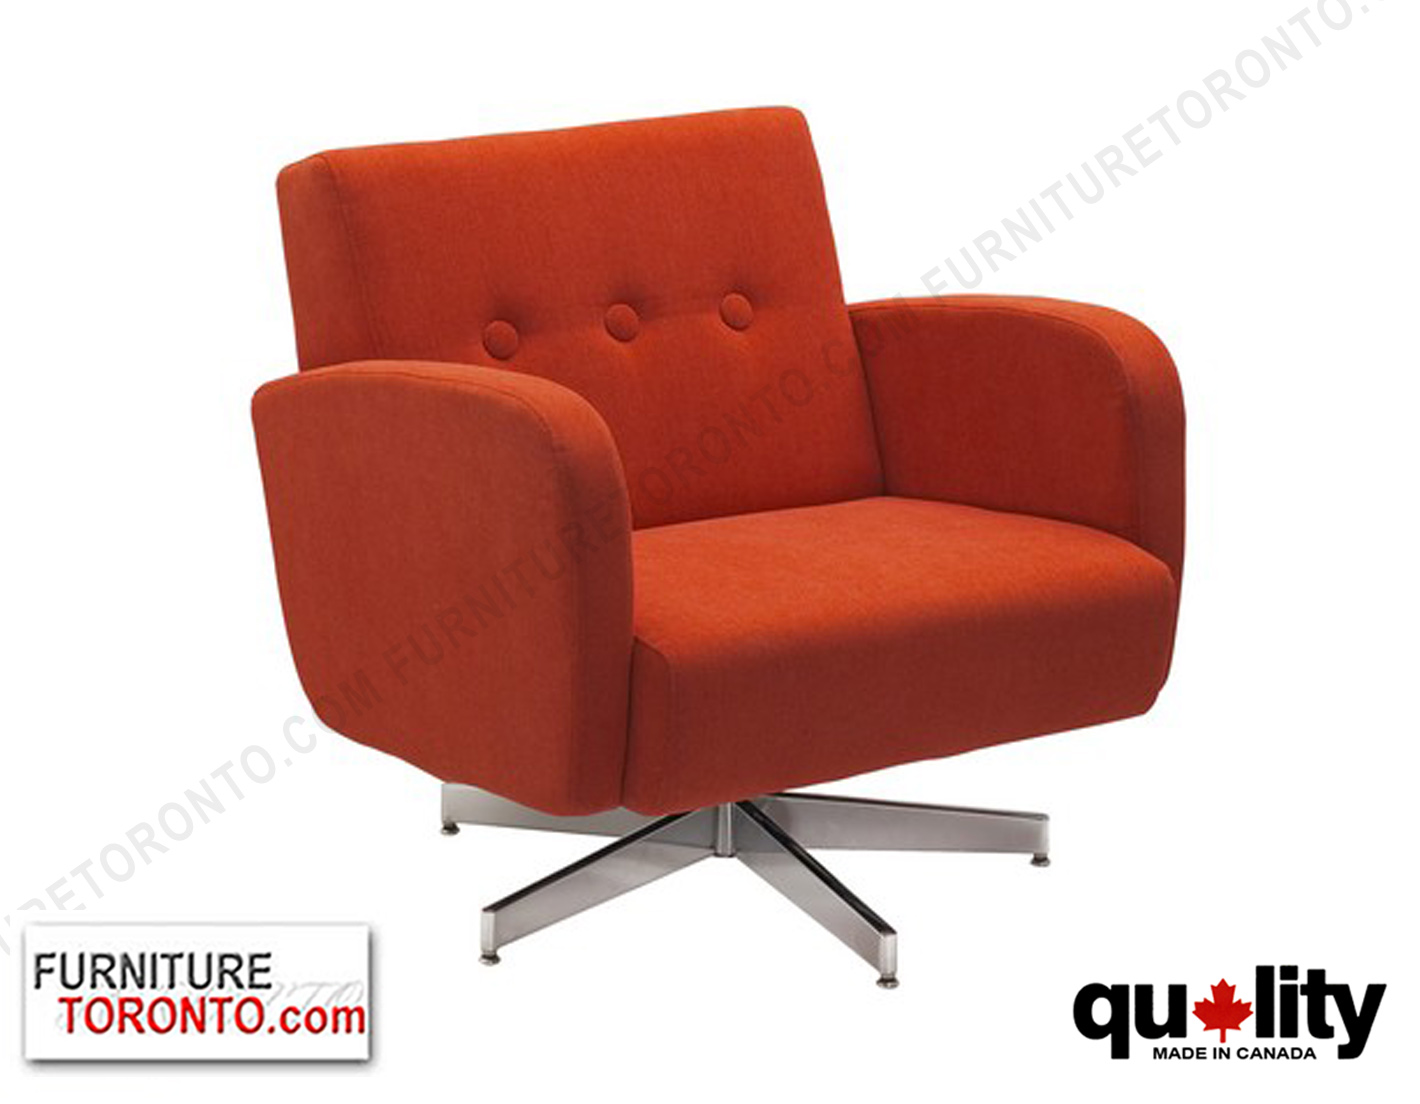 Furniture toronto official website furniture retail for B furniture toronto